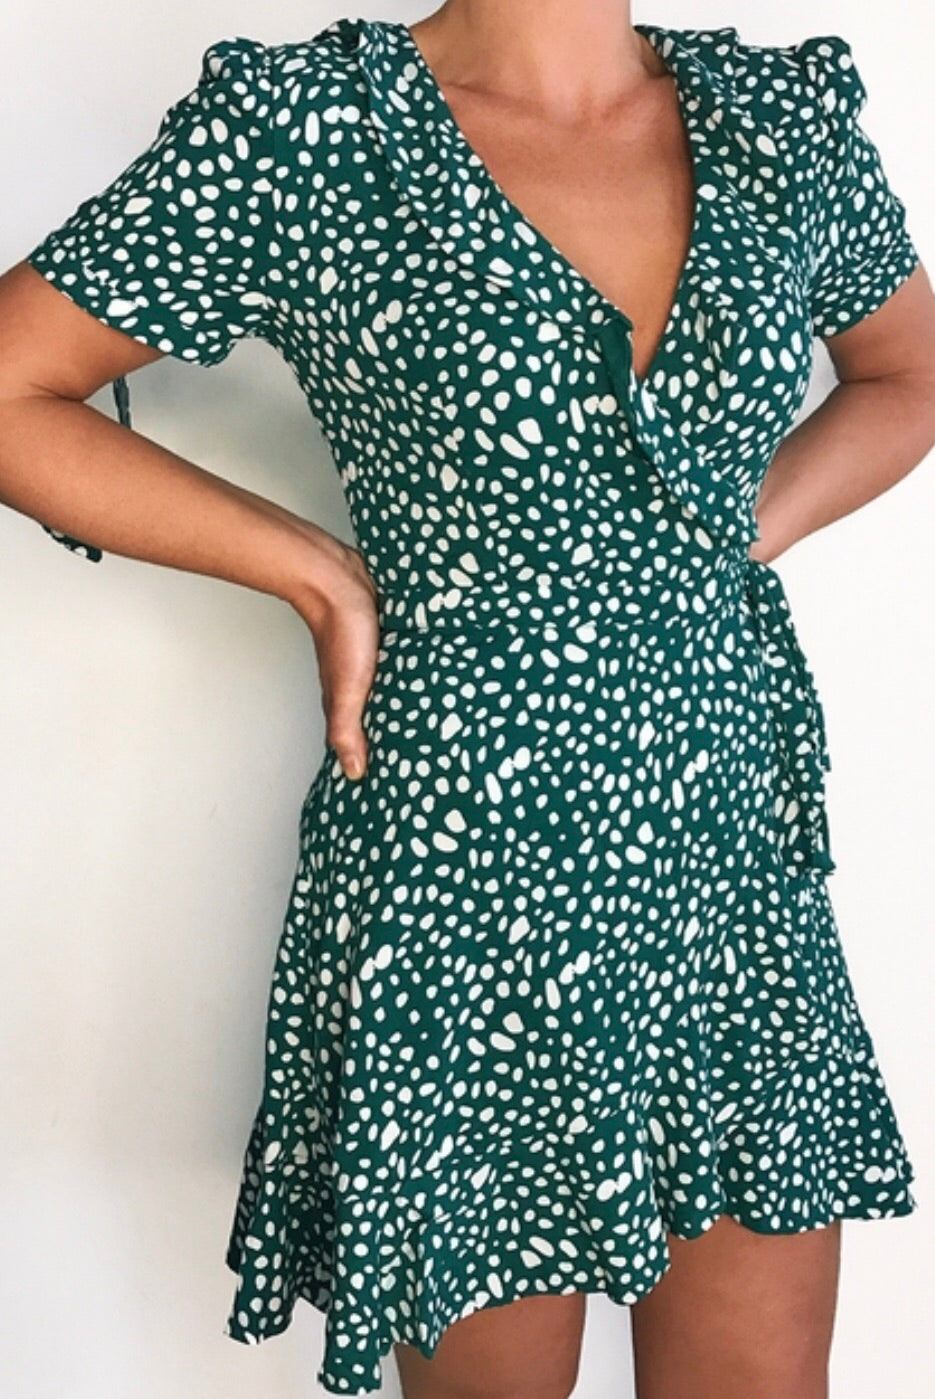 Mon cherie ss emerald wrap dress